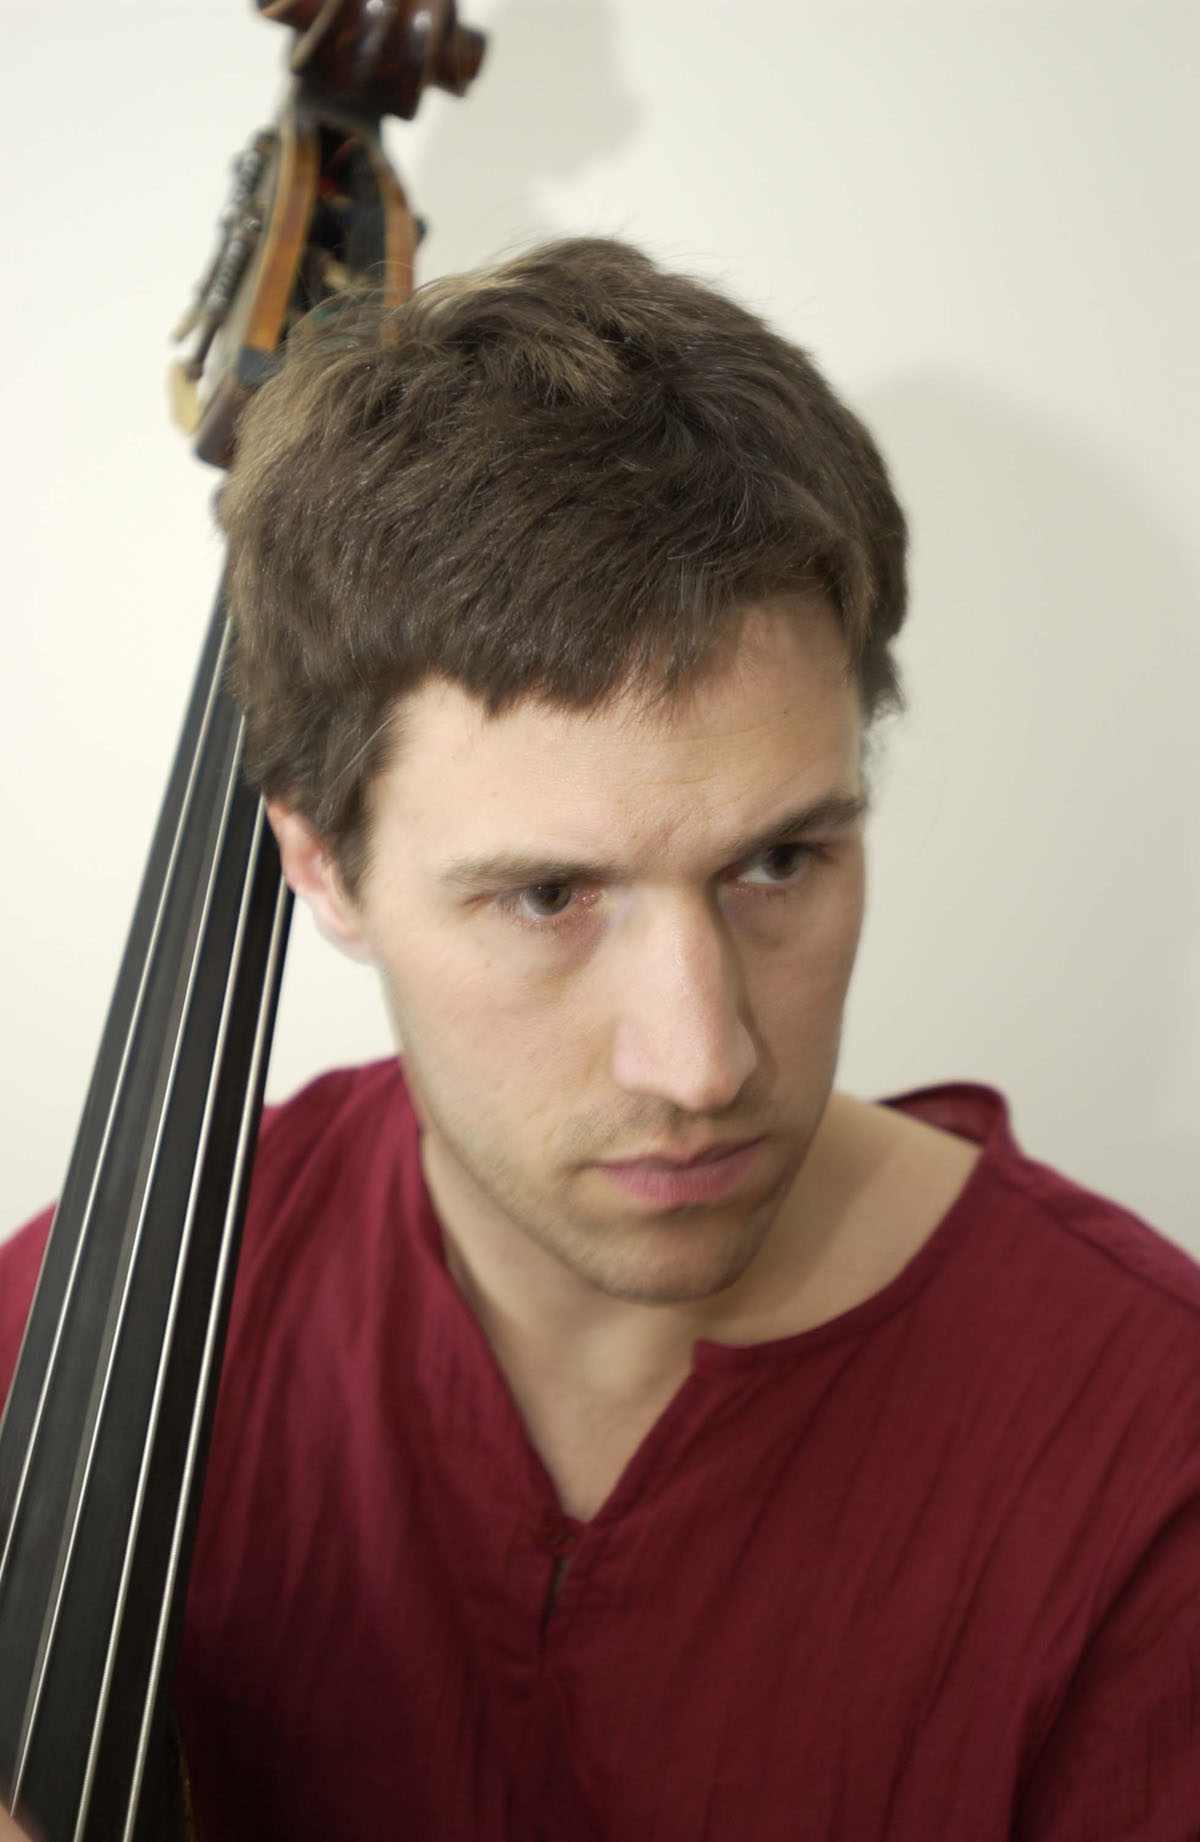 Joshua Davis with his upright bass.